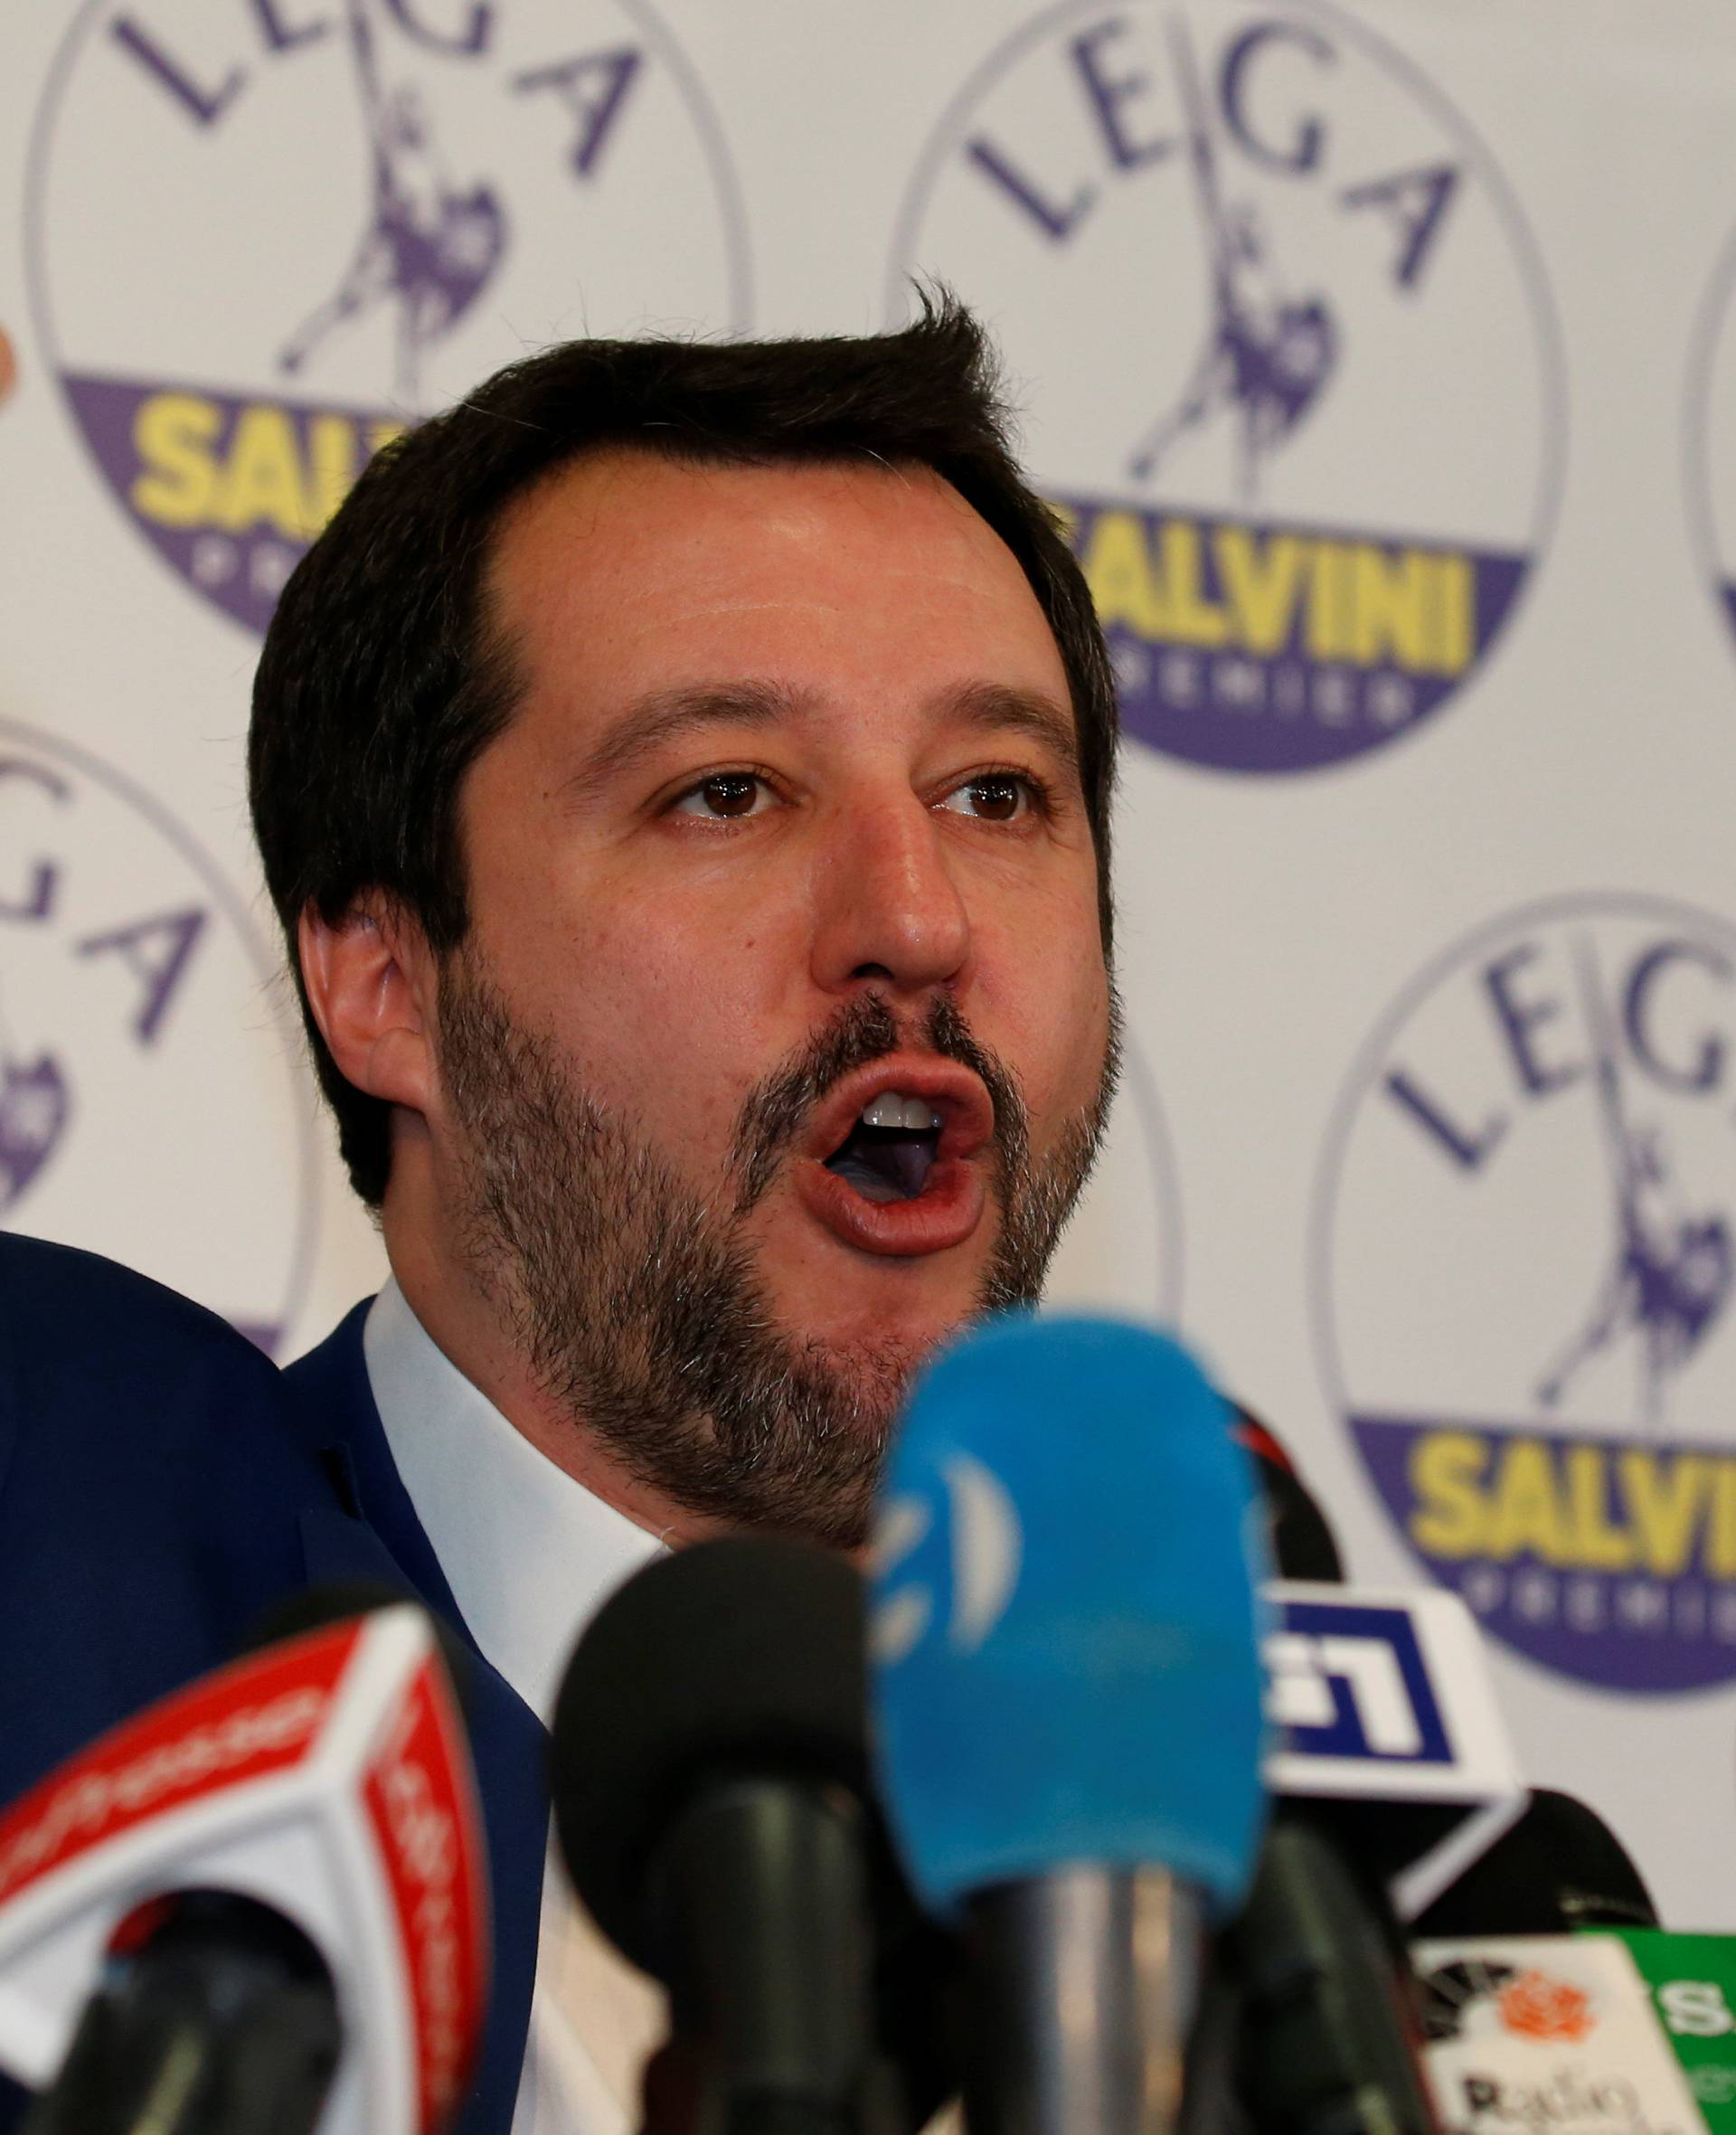 Northern League party leader Matteo Salvini talks during a news conference, the day after Italy's parliamentary elections, in Milan